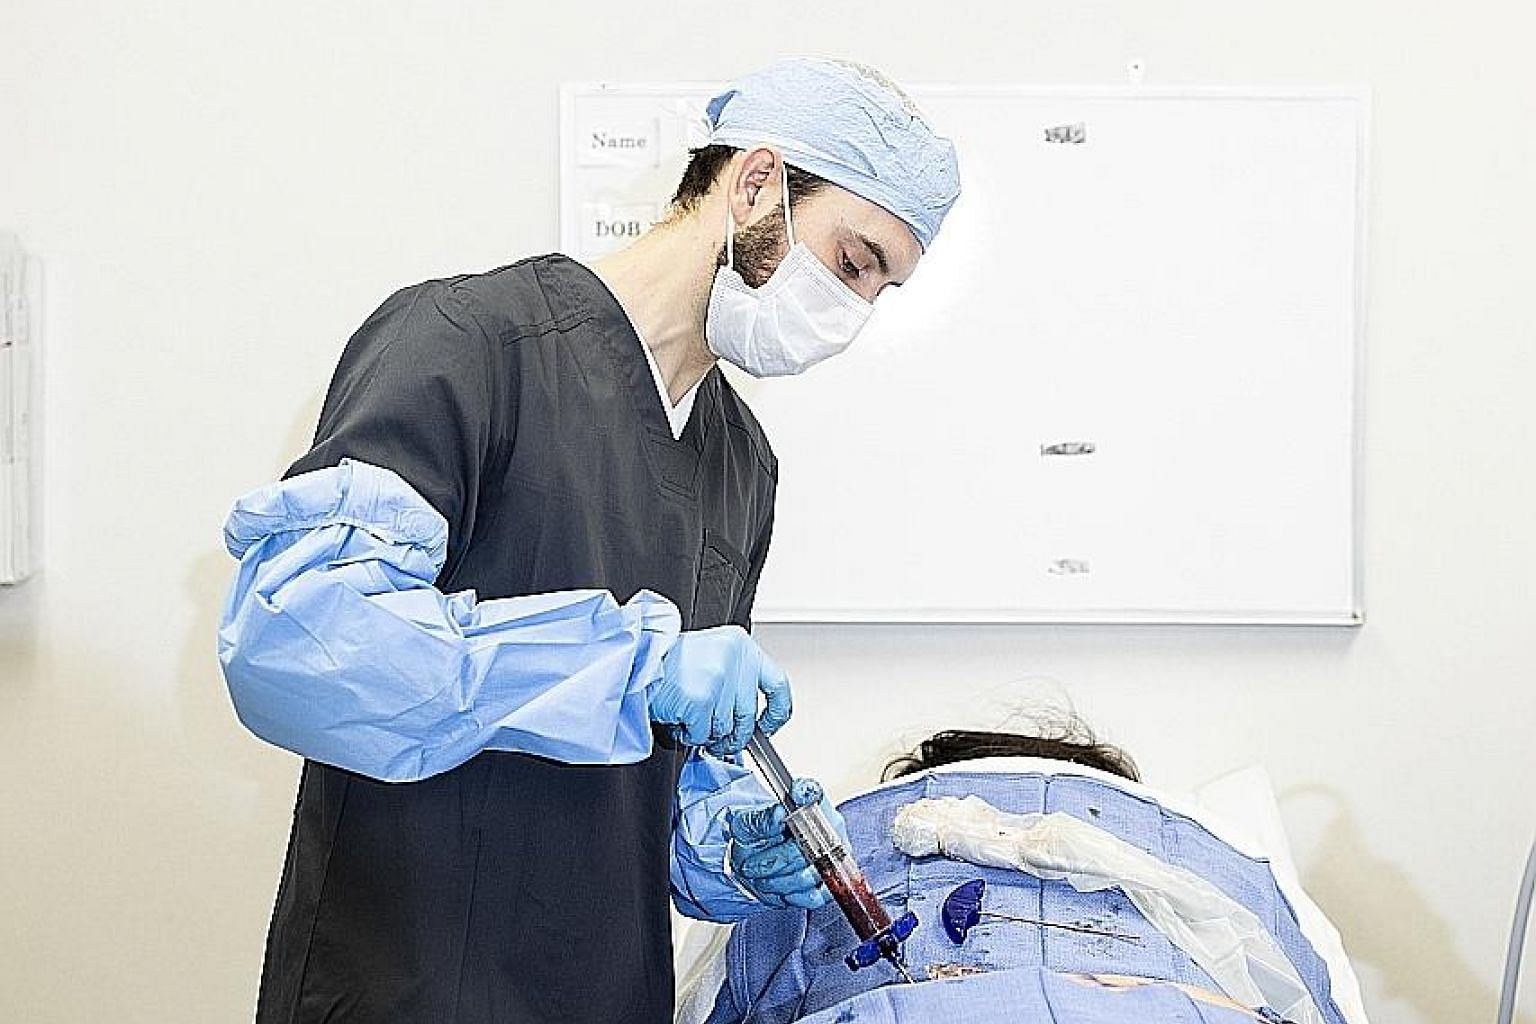 A doctor extracting bone marrow from a patient's pelvic bone at a clinic in the US for a stem cell procedure earlier this year. The Food and Drug Administration has taken an industry-friendly approach towards companies using unproven cell cocktails t